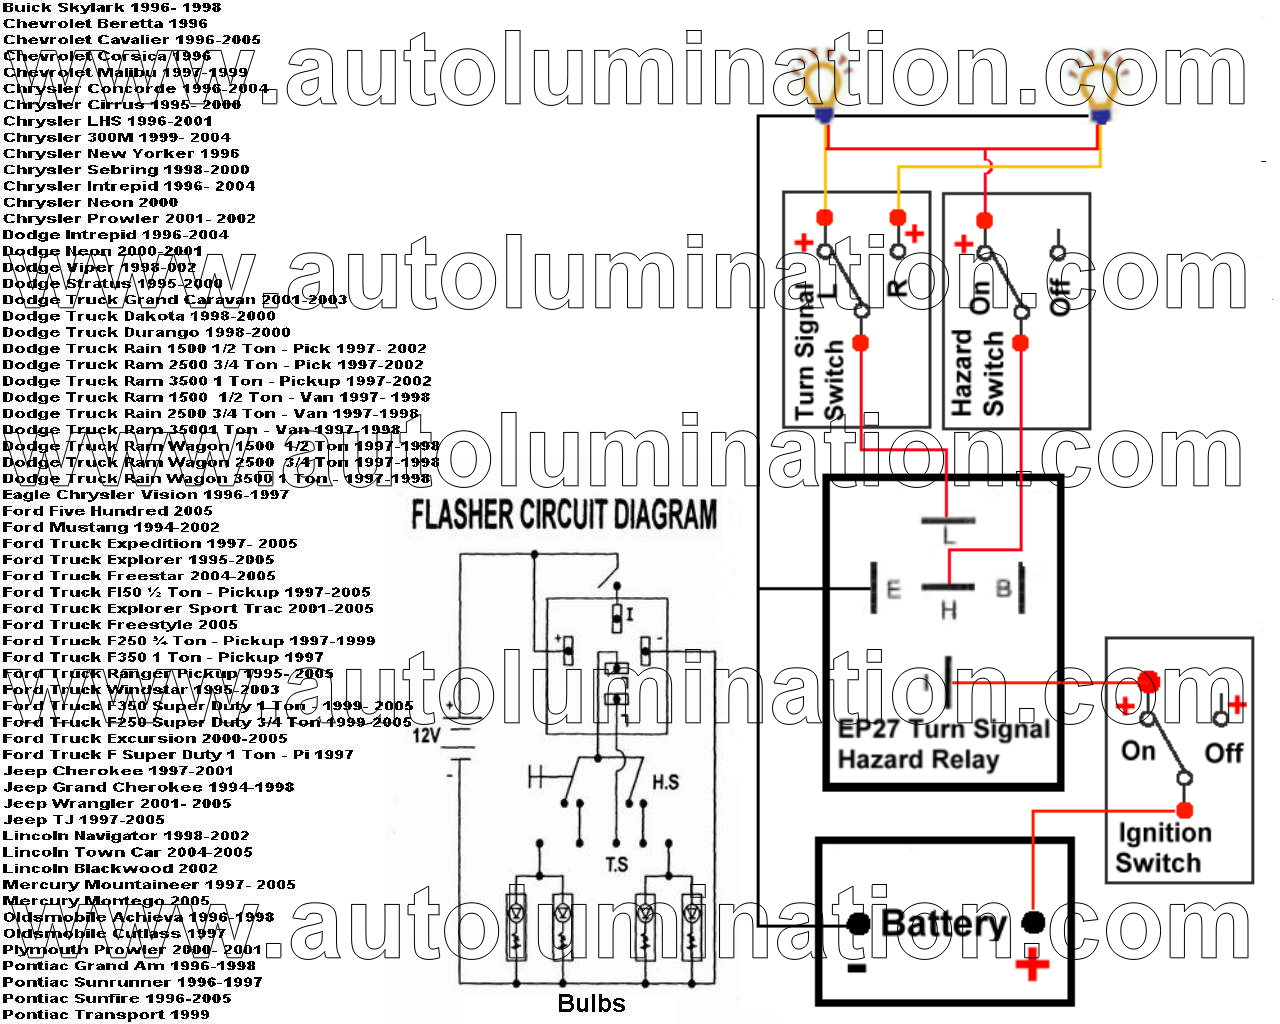 Tridon El13 Flasher Wiring Diagram Diagrams Flash Circuit Schematic Get Free Image About 2 Prong Download U2022 Oasis Dl Co Turn Signal Led